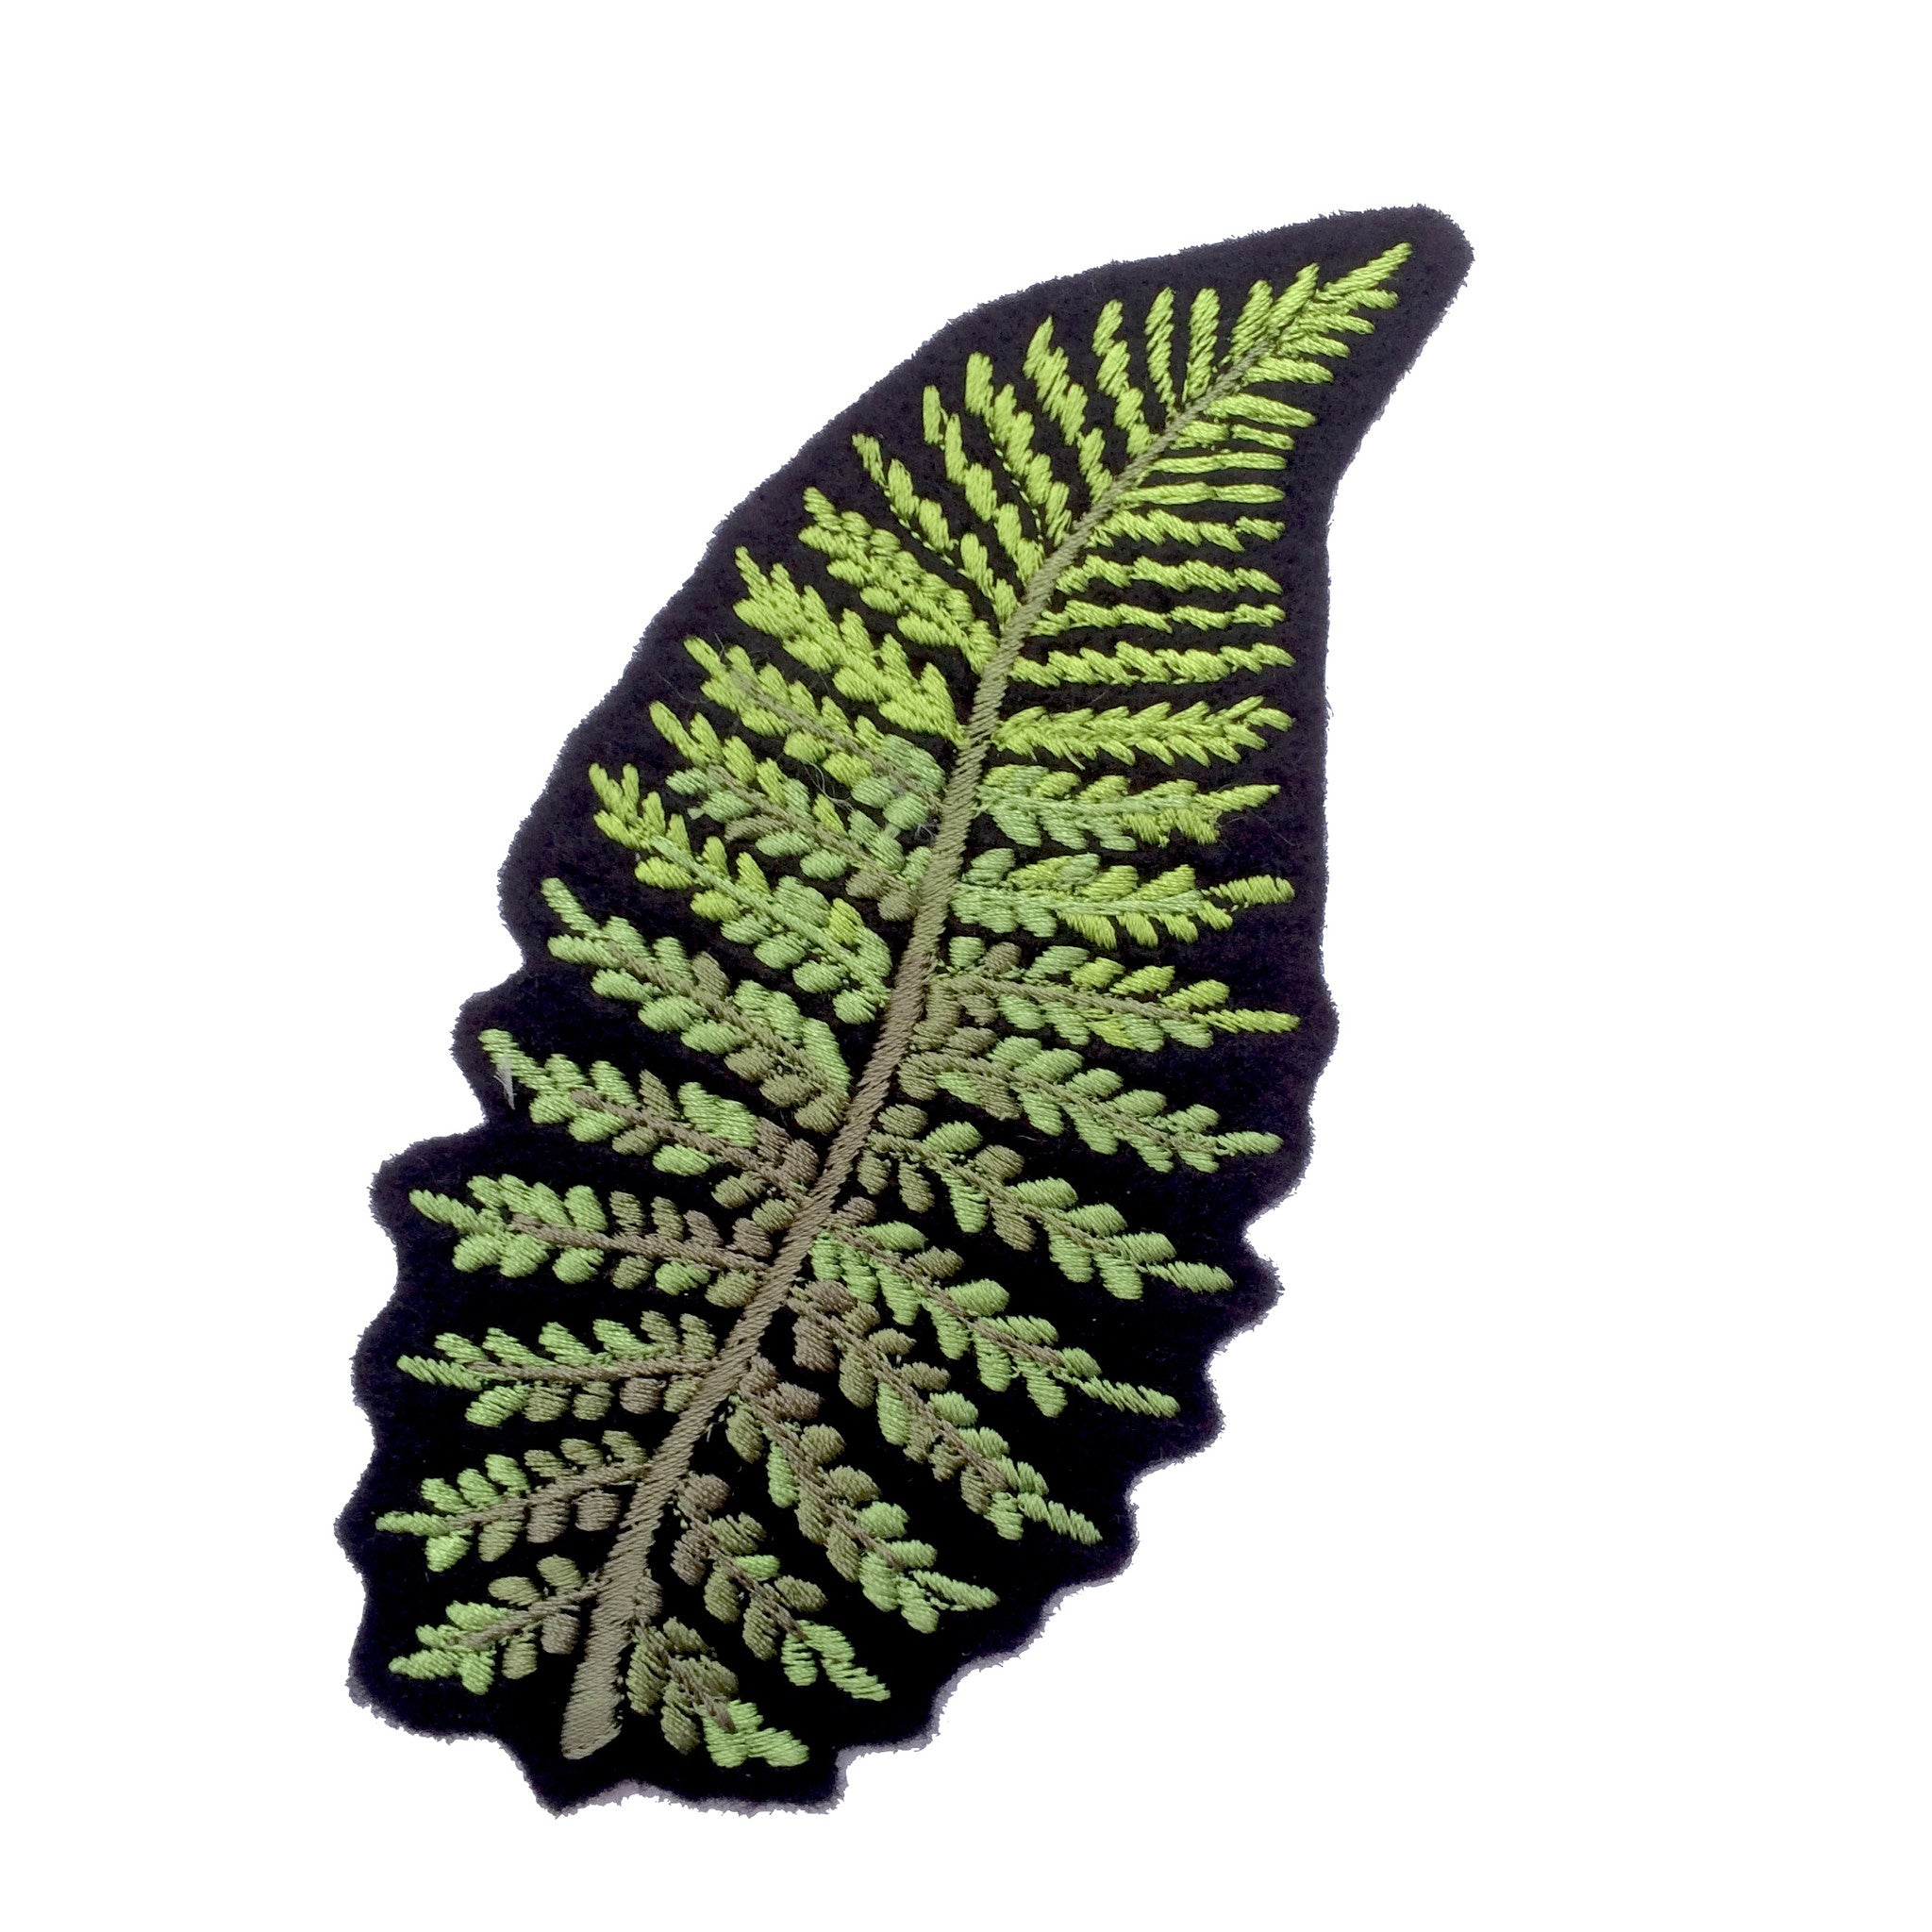 Fern Embroidered Patch 002